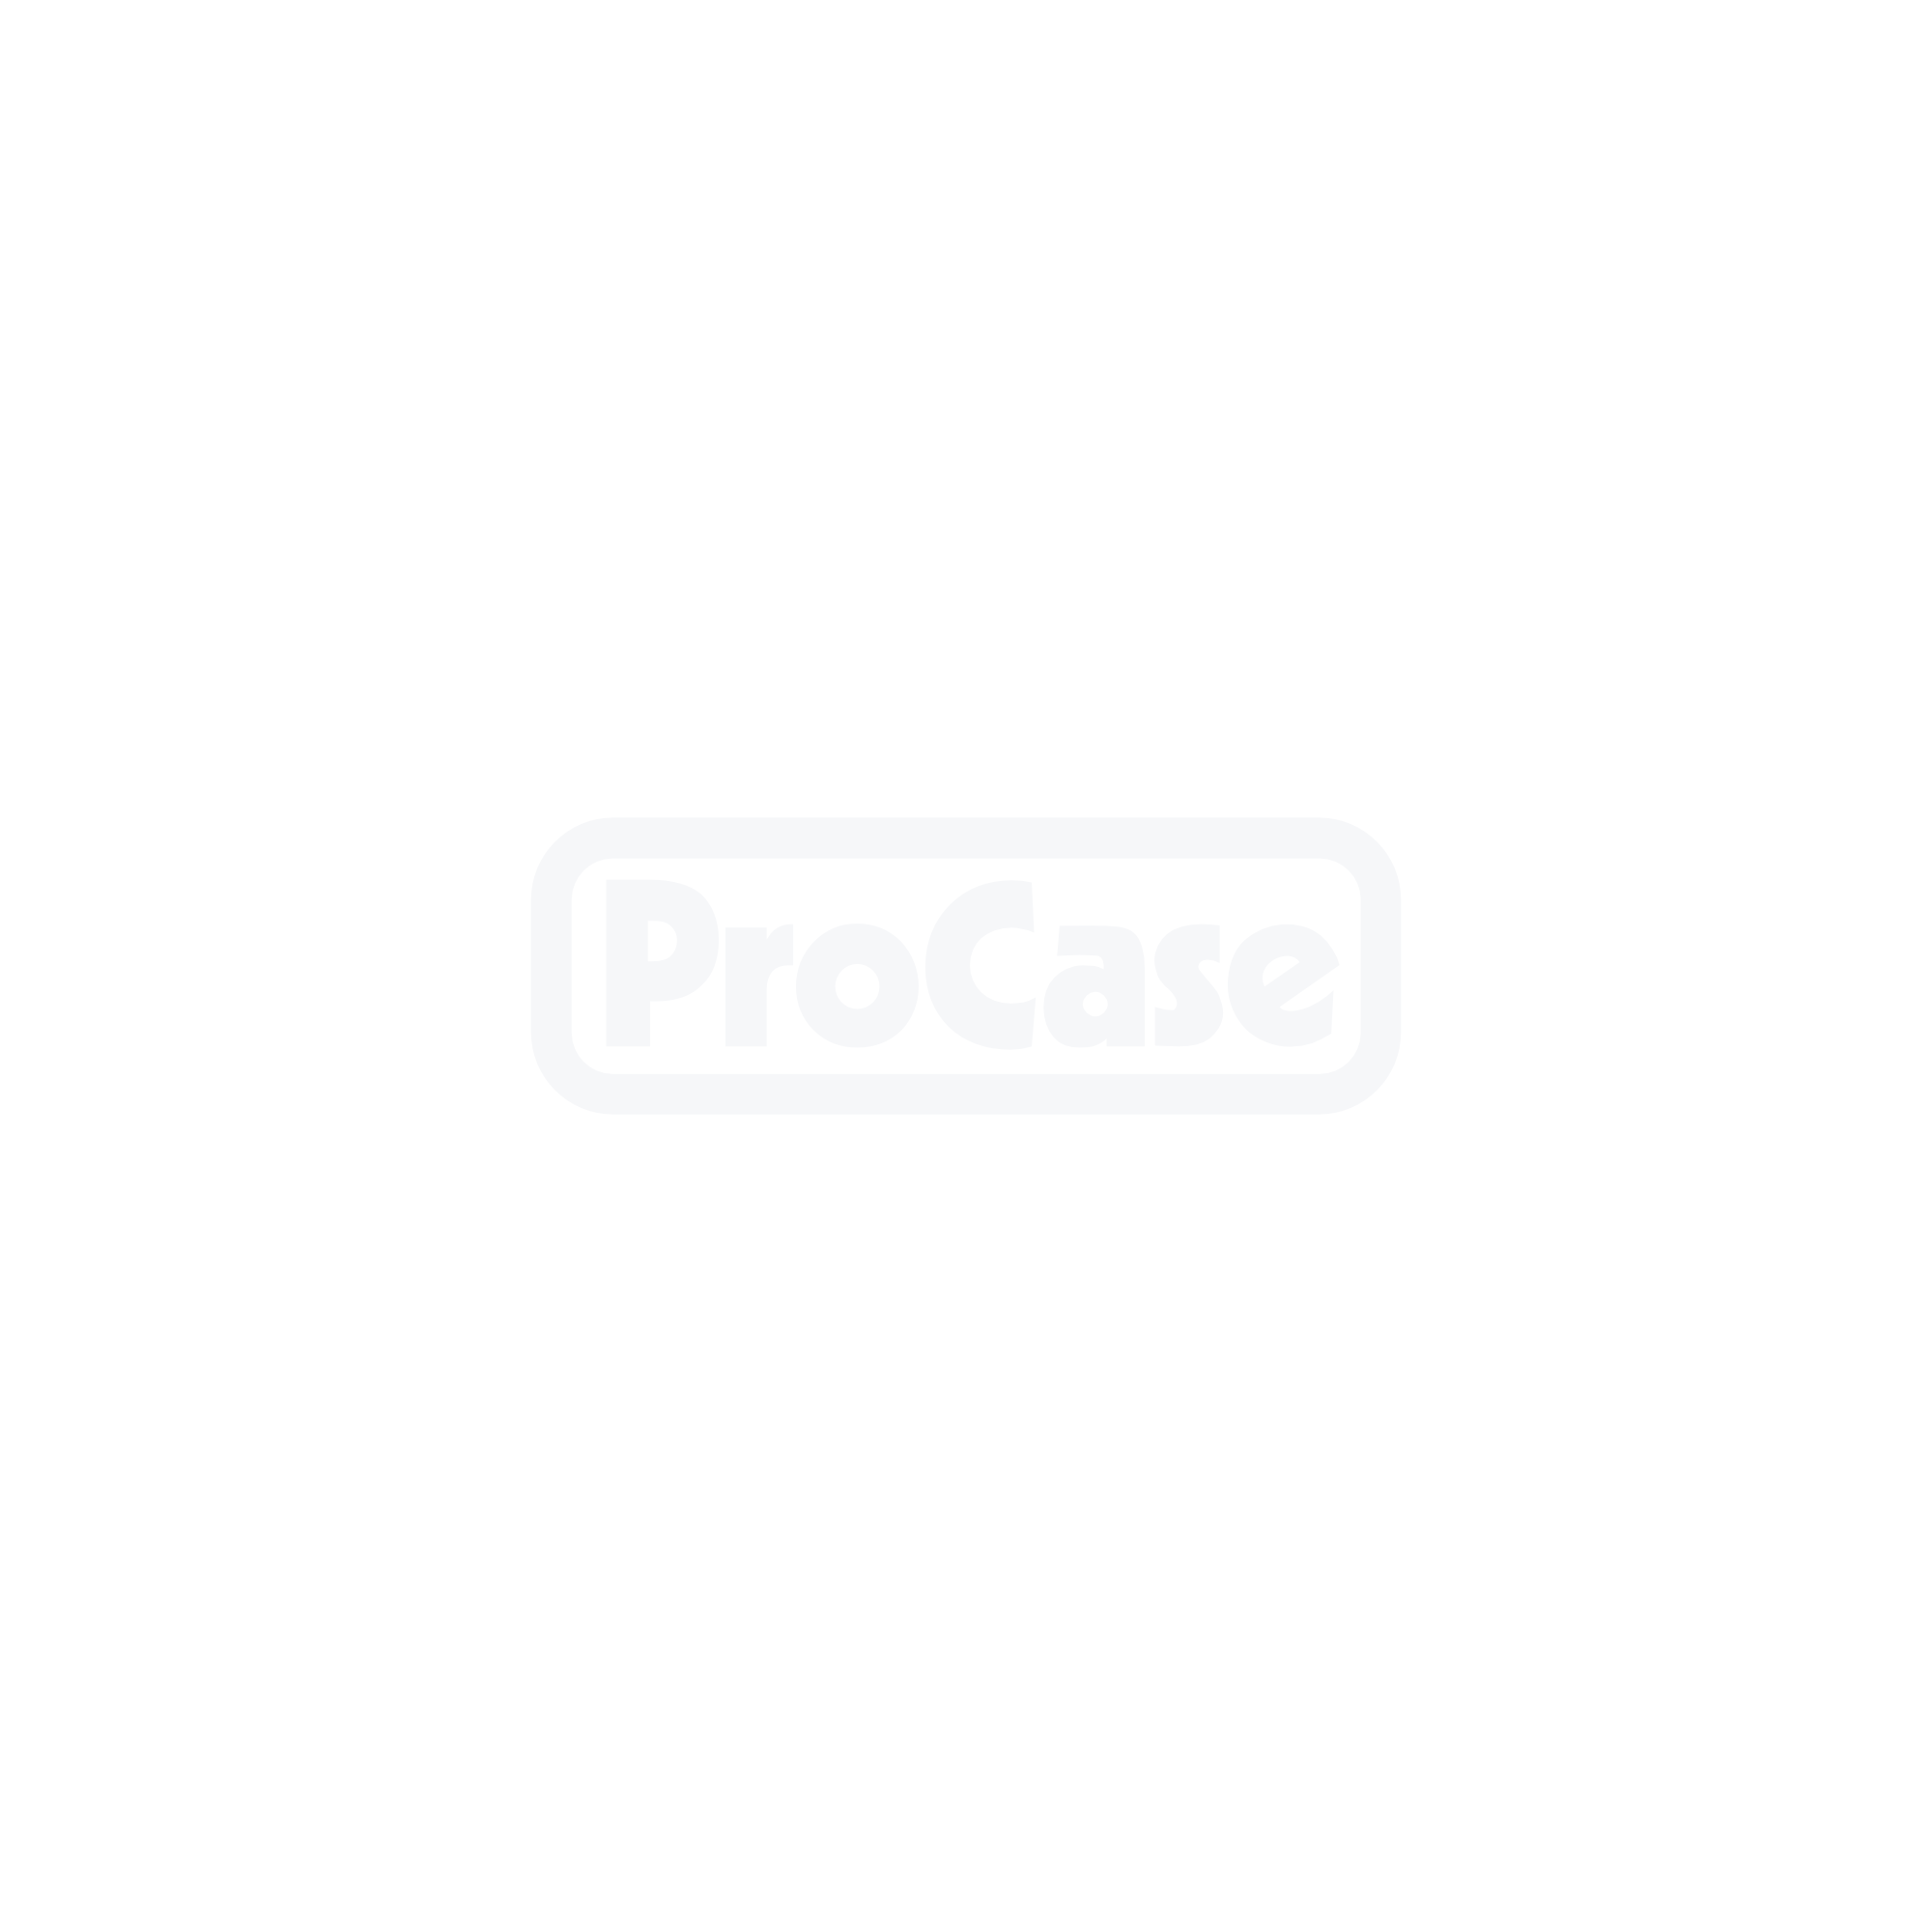 Flightcase für 6x JBLed A7 Zoom / A4 2